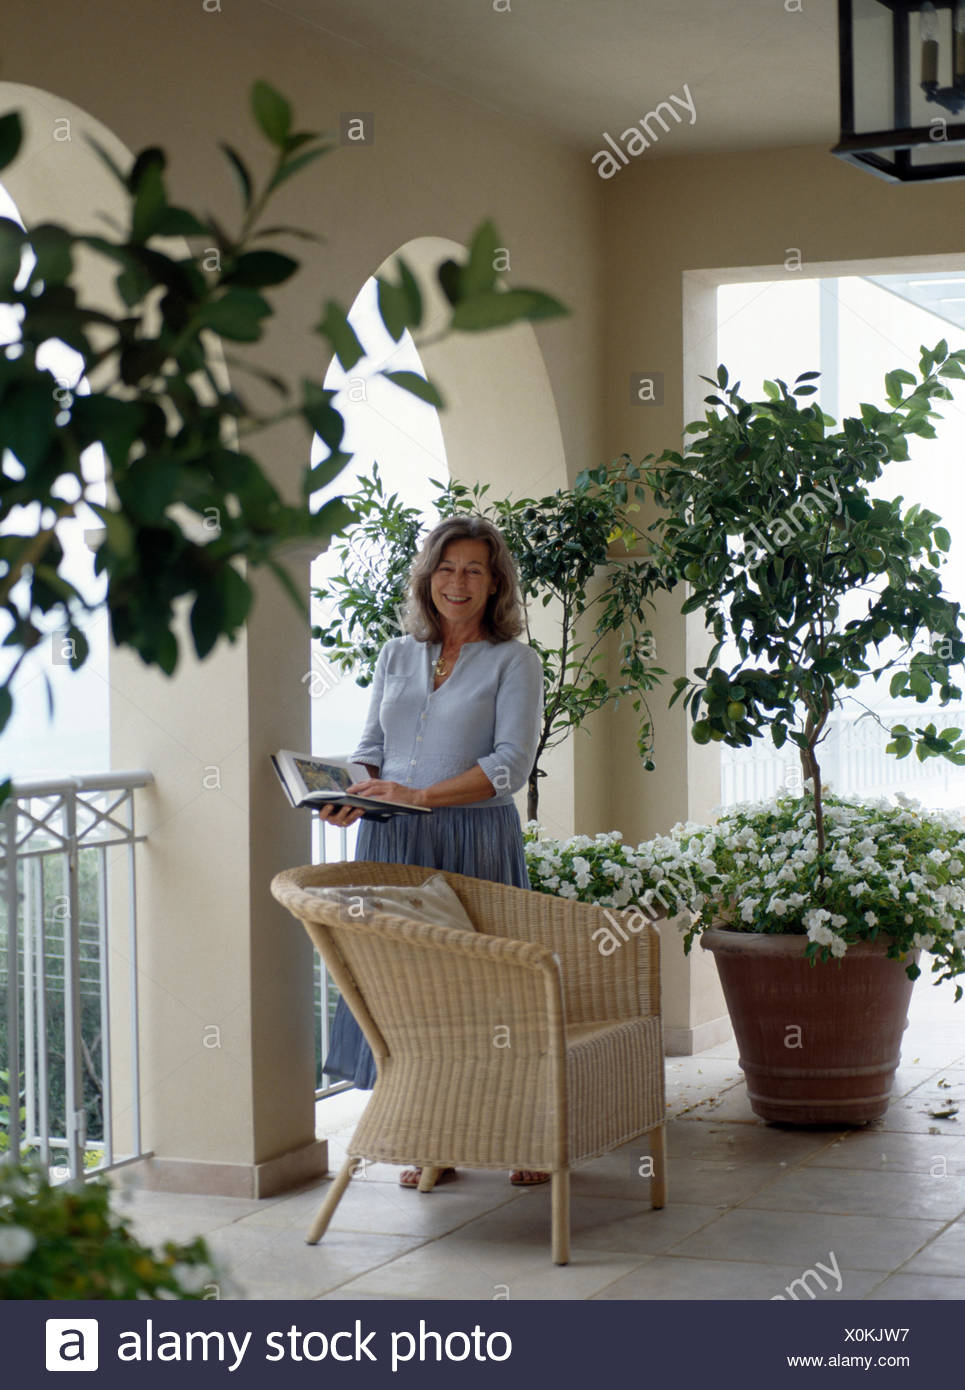 Portrait of woman standing on veranda of French house         FOR EDITORIAL USE ONLY - Stock Image